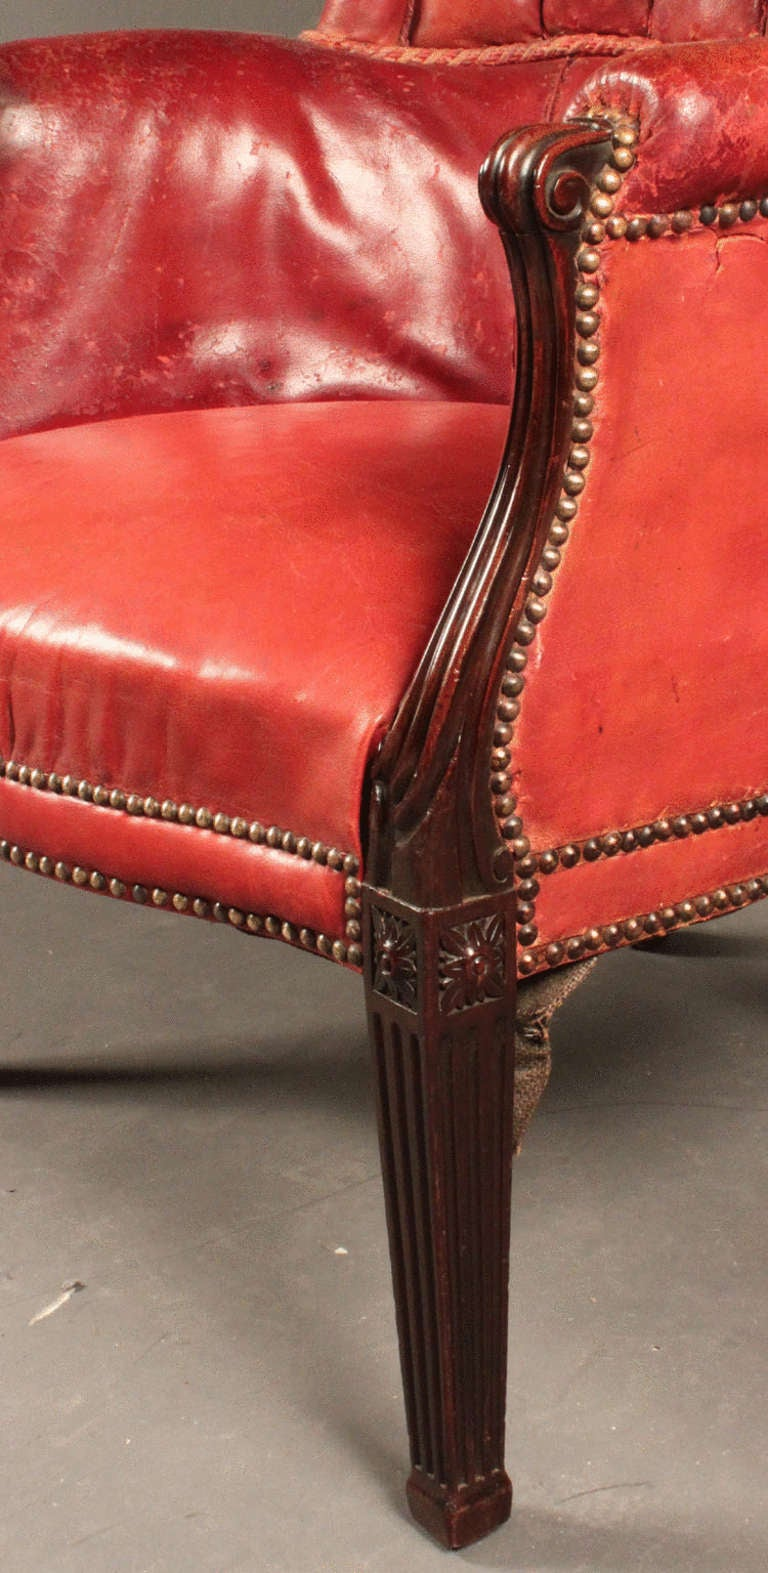 Antique wing chair - Antique Mahogany Barrel Back Wing Chair 3